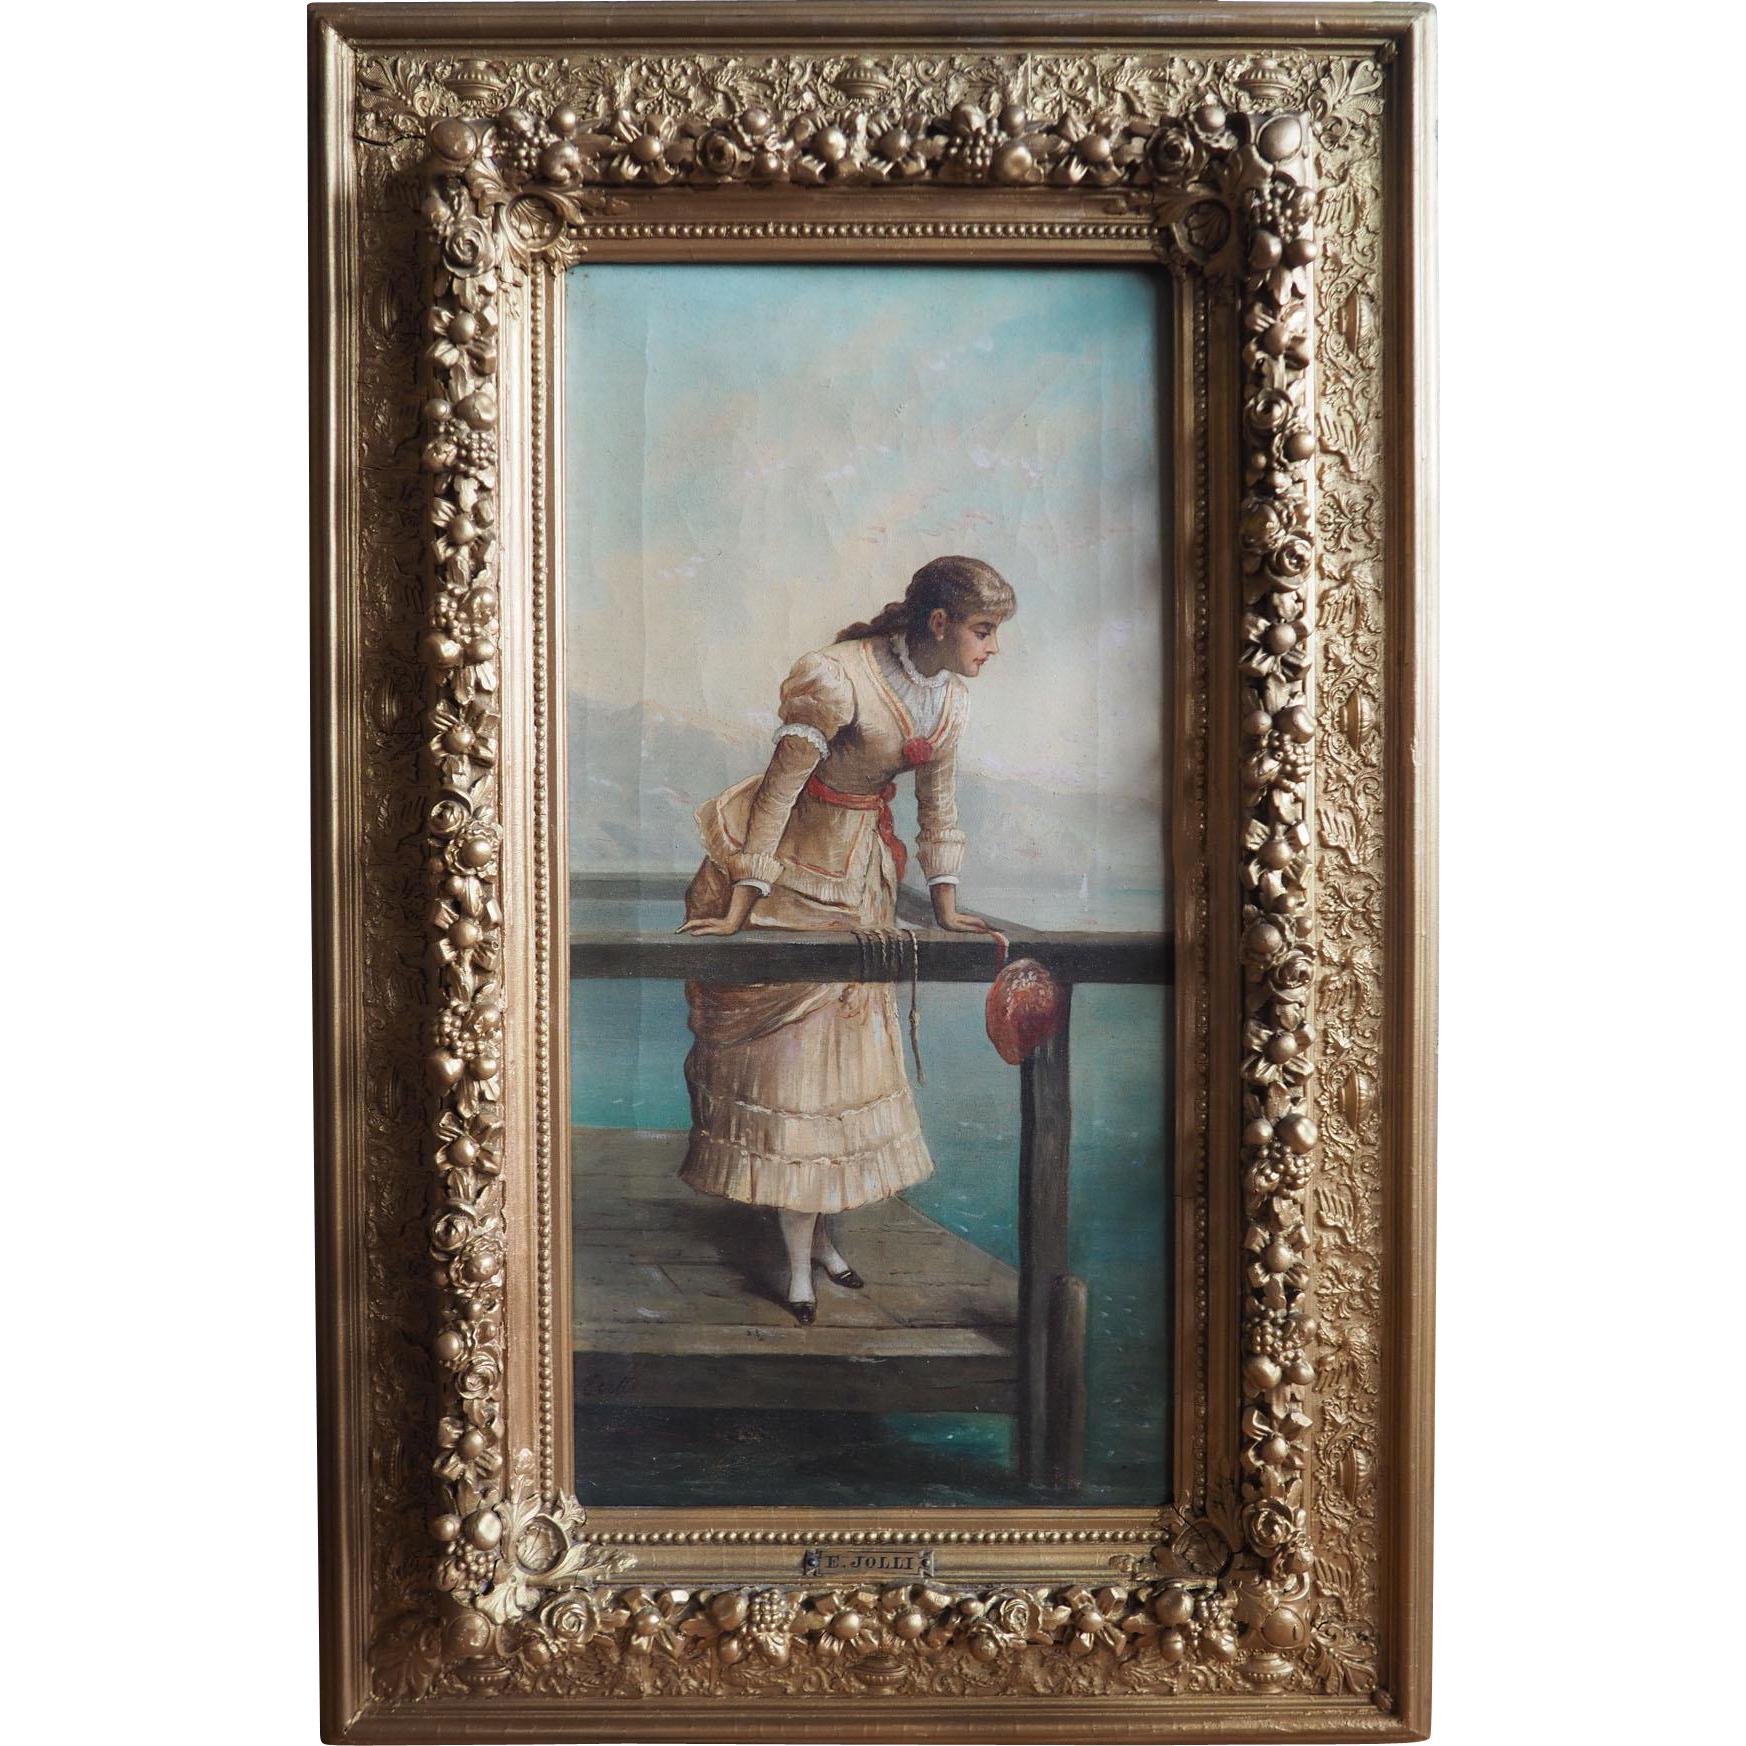 Woman on pier antique 19th century Italian painting by Ernesto Jolli Italy